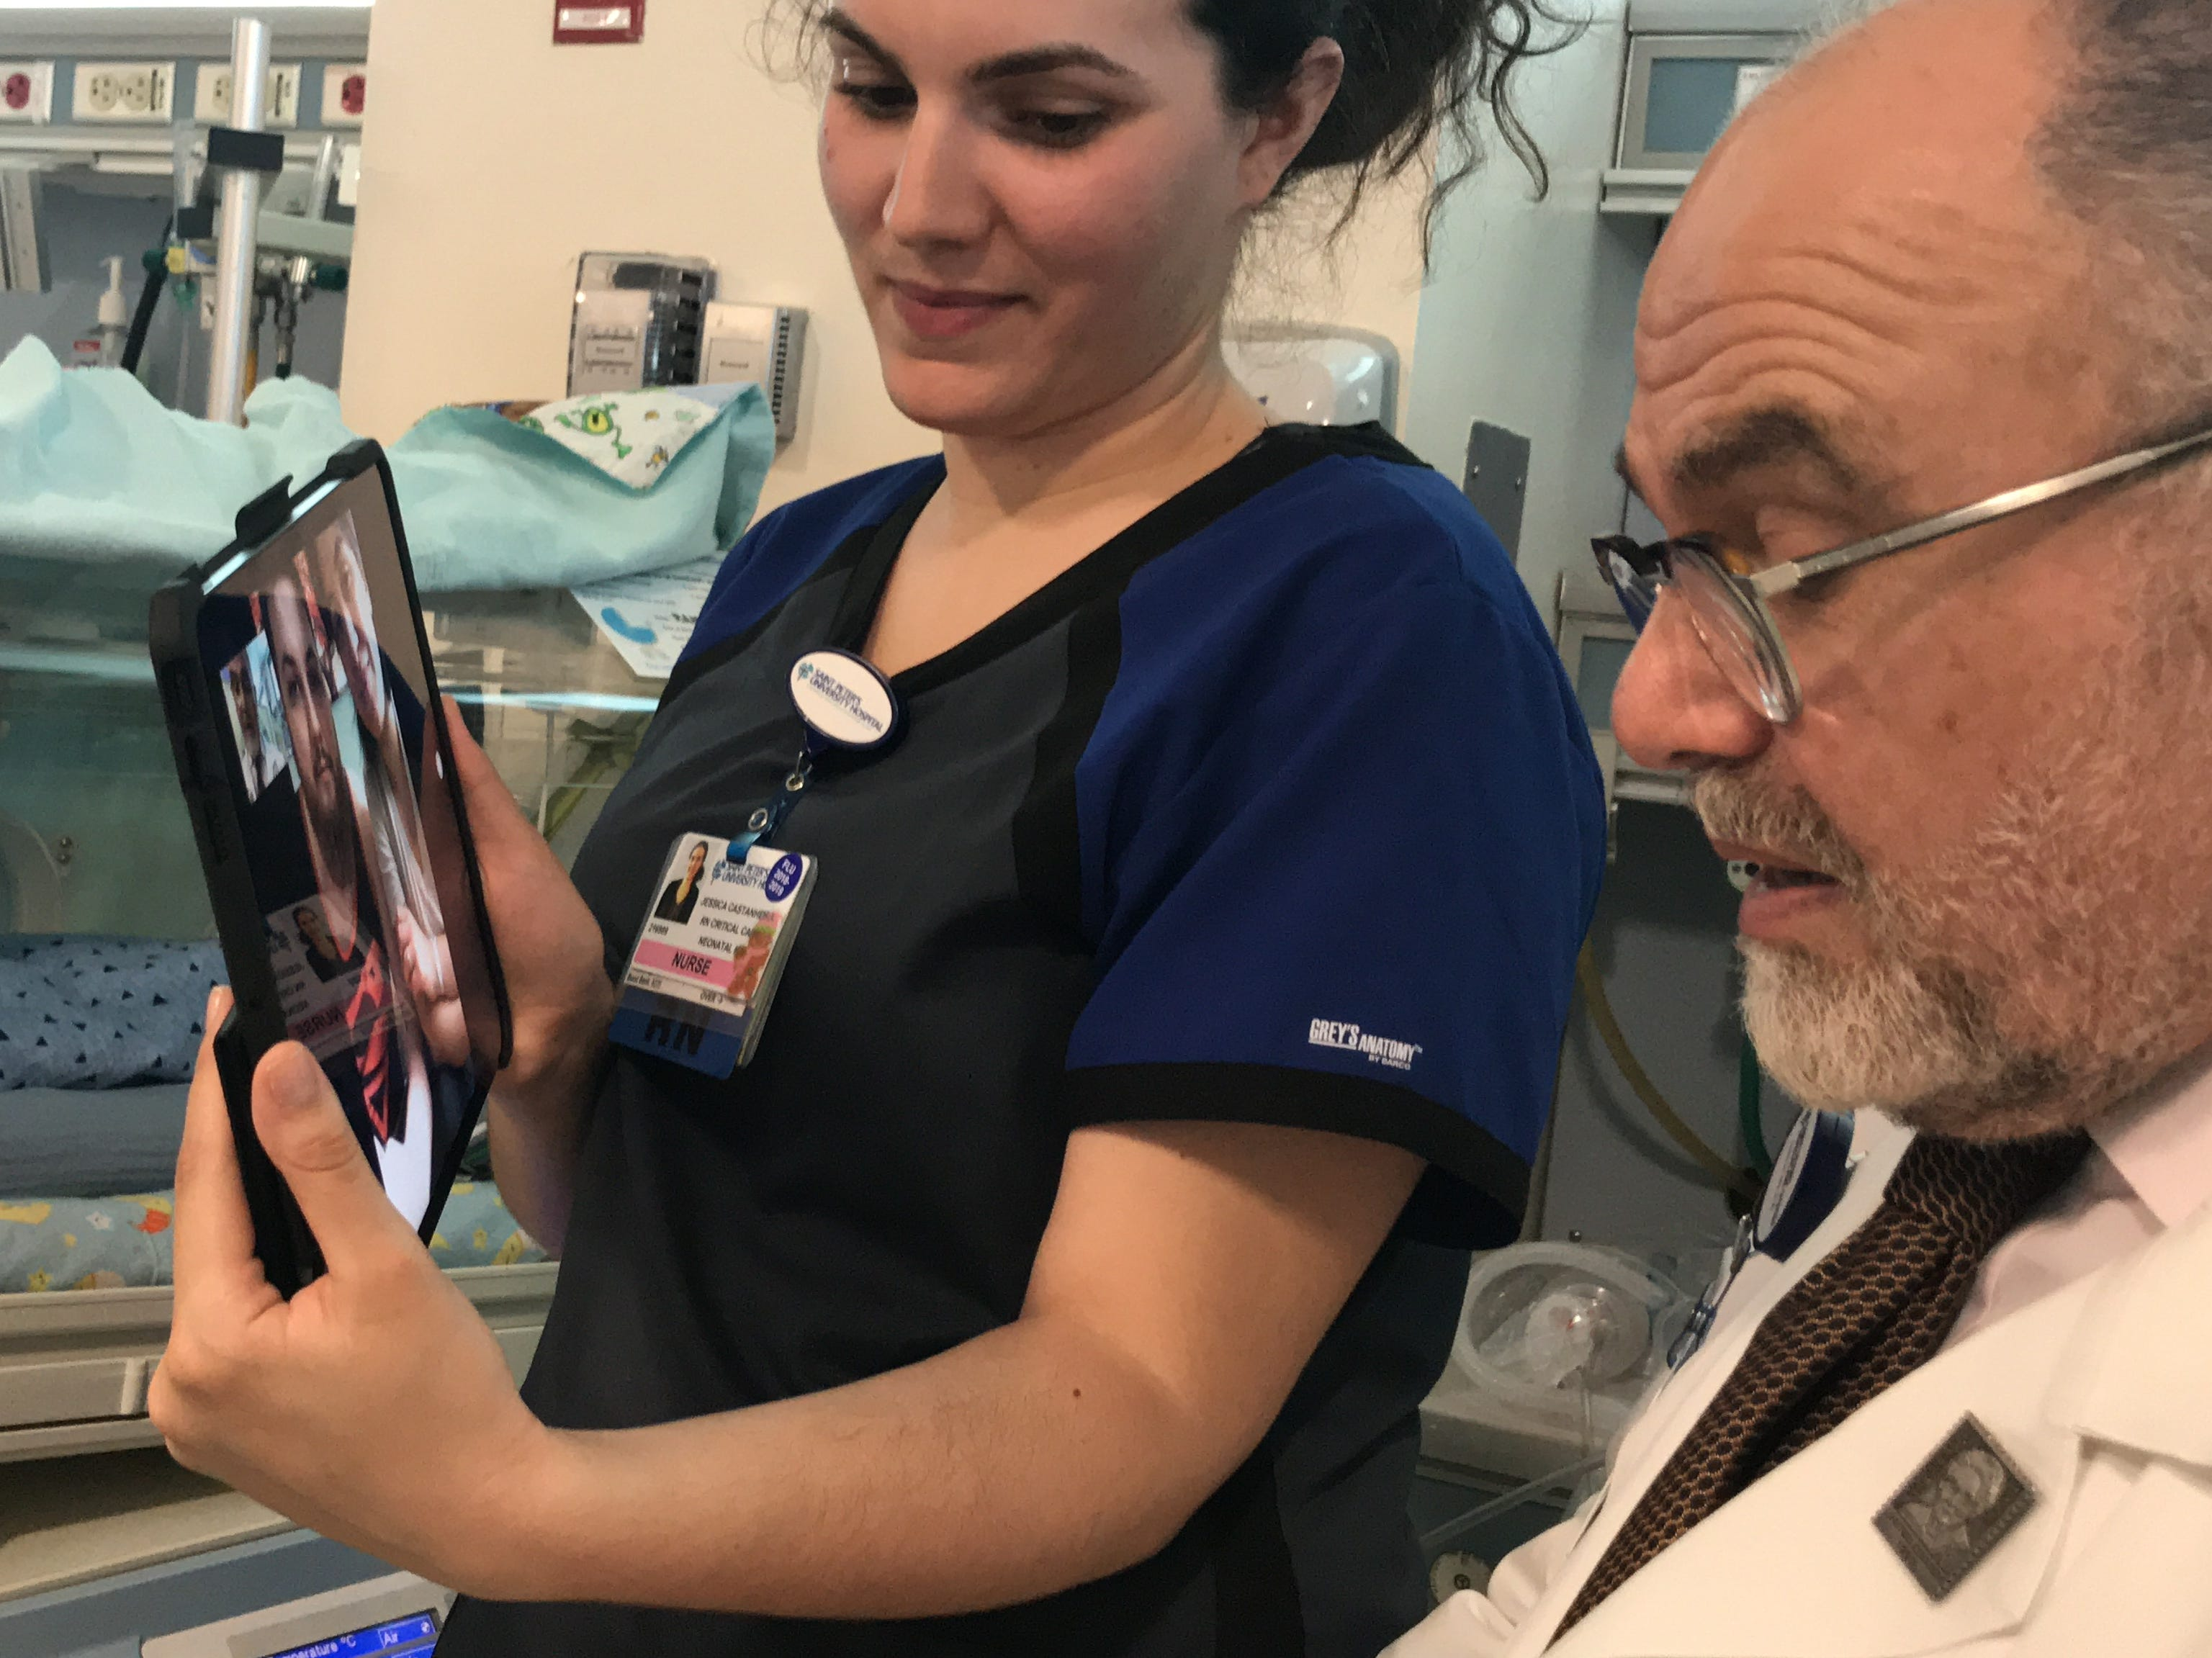 Dr. Mark Hiatt, chief of Neonatology at The Children's Hospital at Saint Peter's University Hospital in New Brunswick, and Neonatal Critical Care Nurse Jessica Castanheira, here with newborn Joseph Nardone Jr. of Rahway and his parents Sabrina Ramirez and Joseph Nardone Sr. (on the iPad), demonstrate the recently launched daily FaceTime program in the Neonatal Intensive Care Unit (NICU). The first-of-its-kind in the state, the program delivers a liveaudio and visual feed to parents whose infants need specialized long-term care.